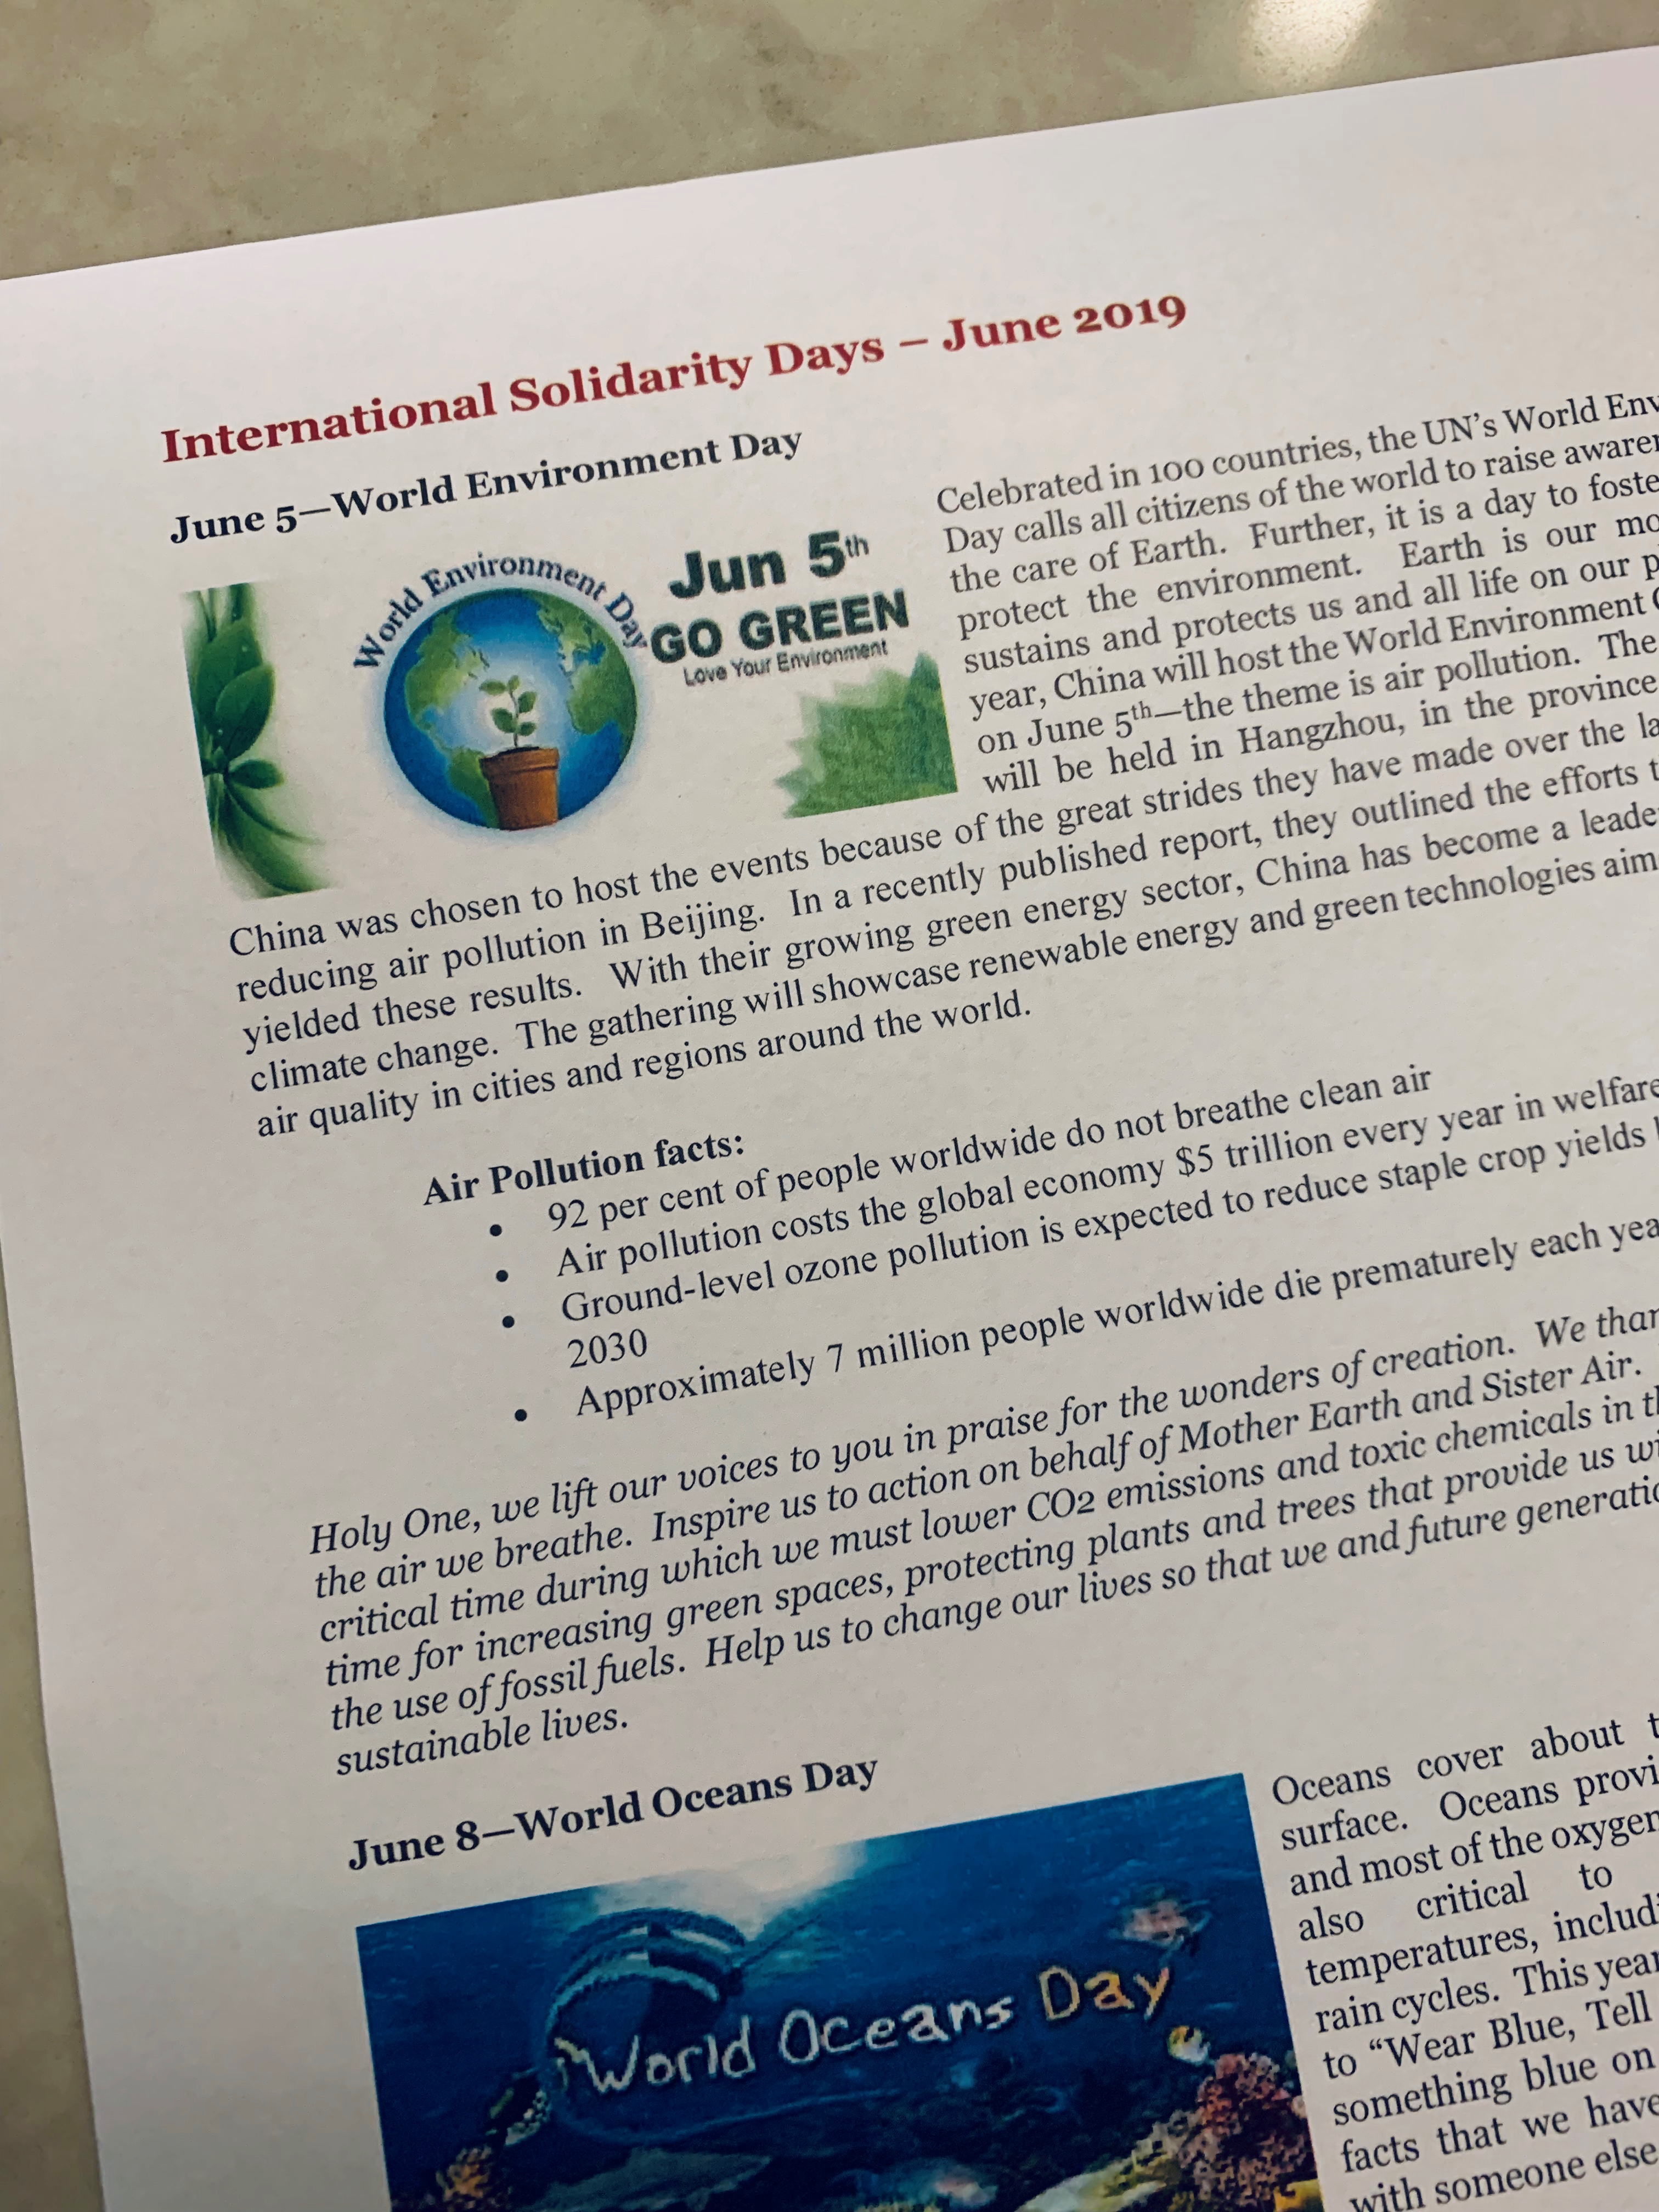 International Solidarity Days – June 2019